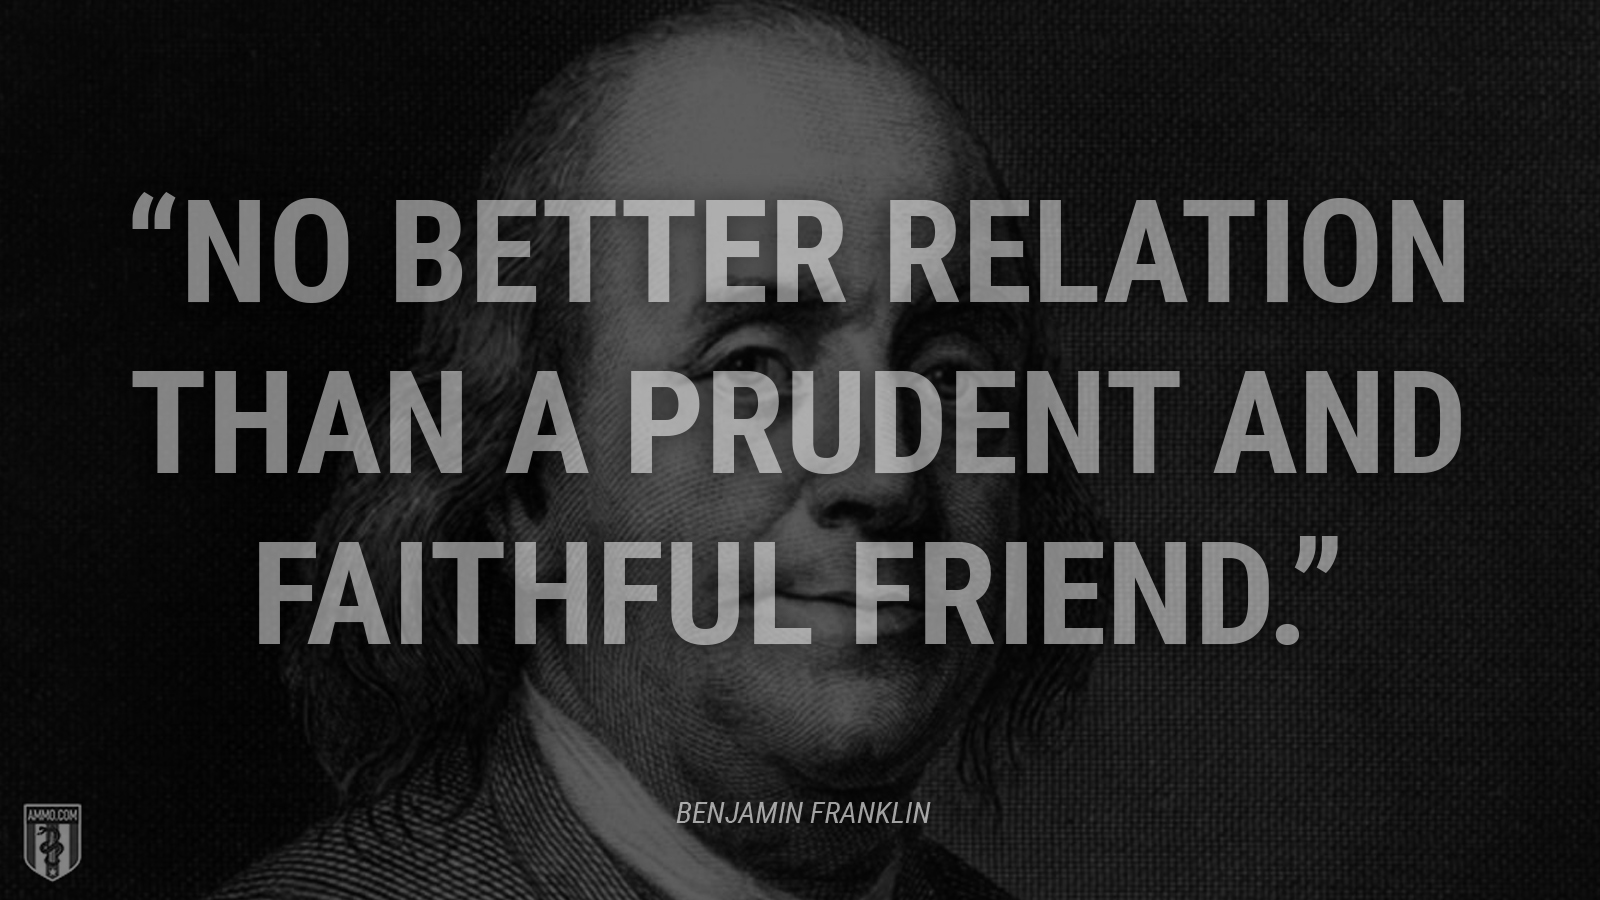 """No better relation than a prudent and faithful Friend."" - Ben Franklin"